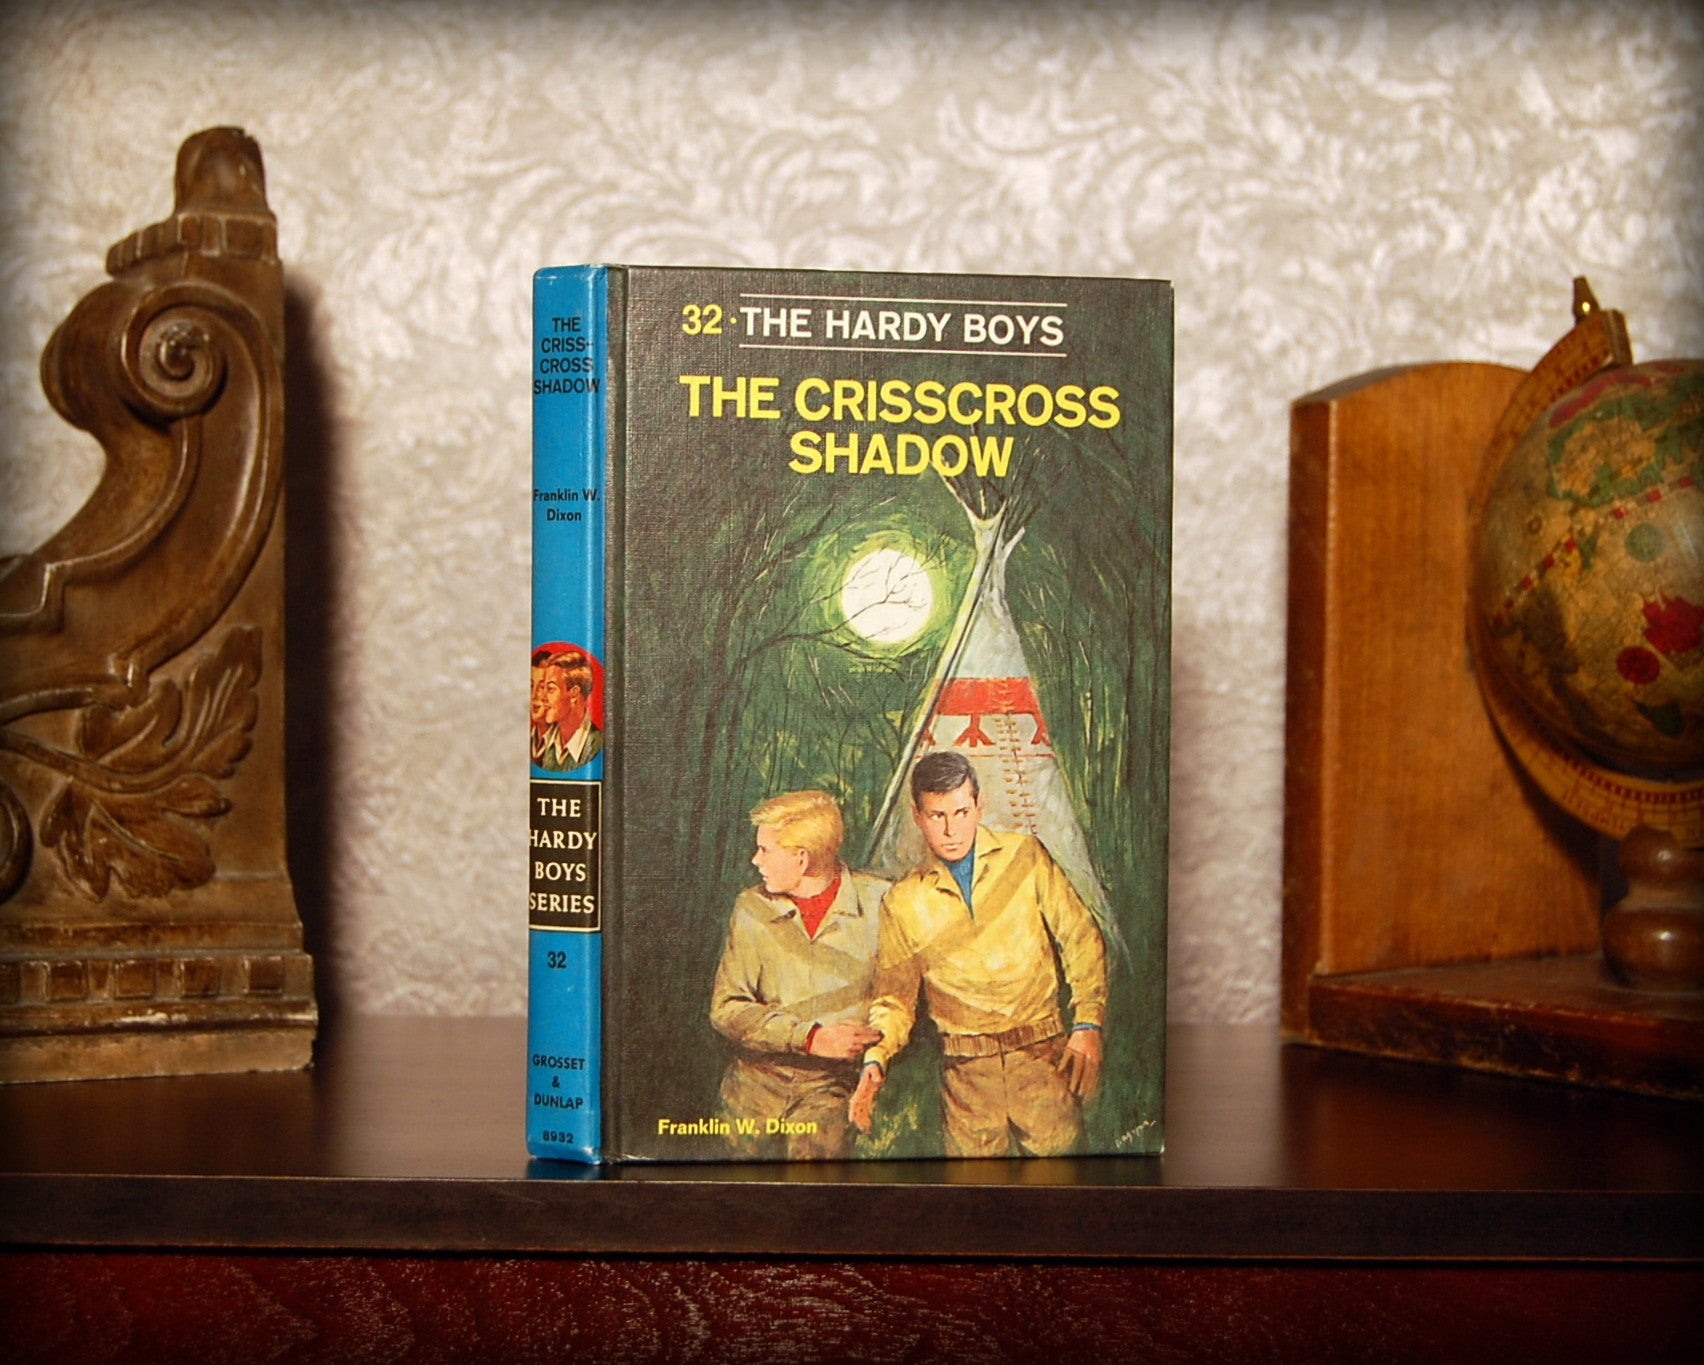 The Hardy Boys: The Crisscross Shadow (1978) - Secret Safe Books